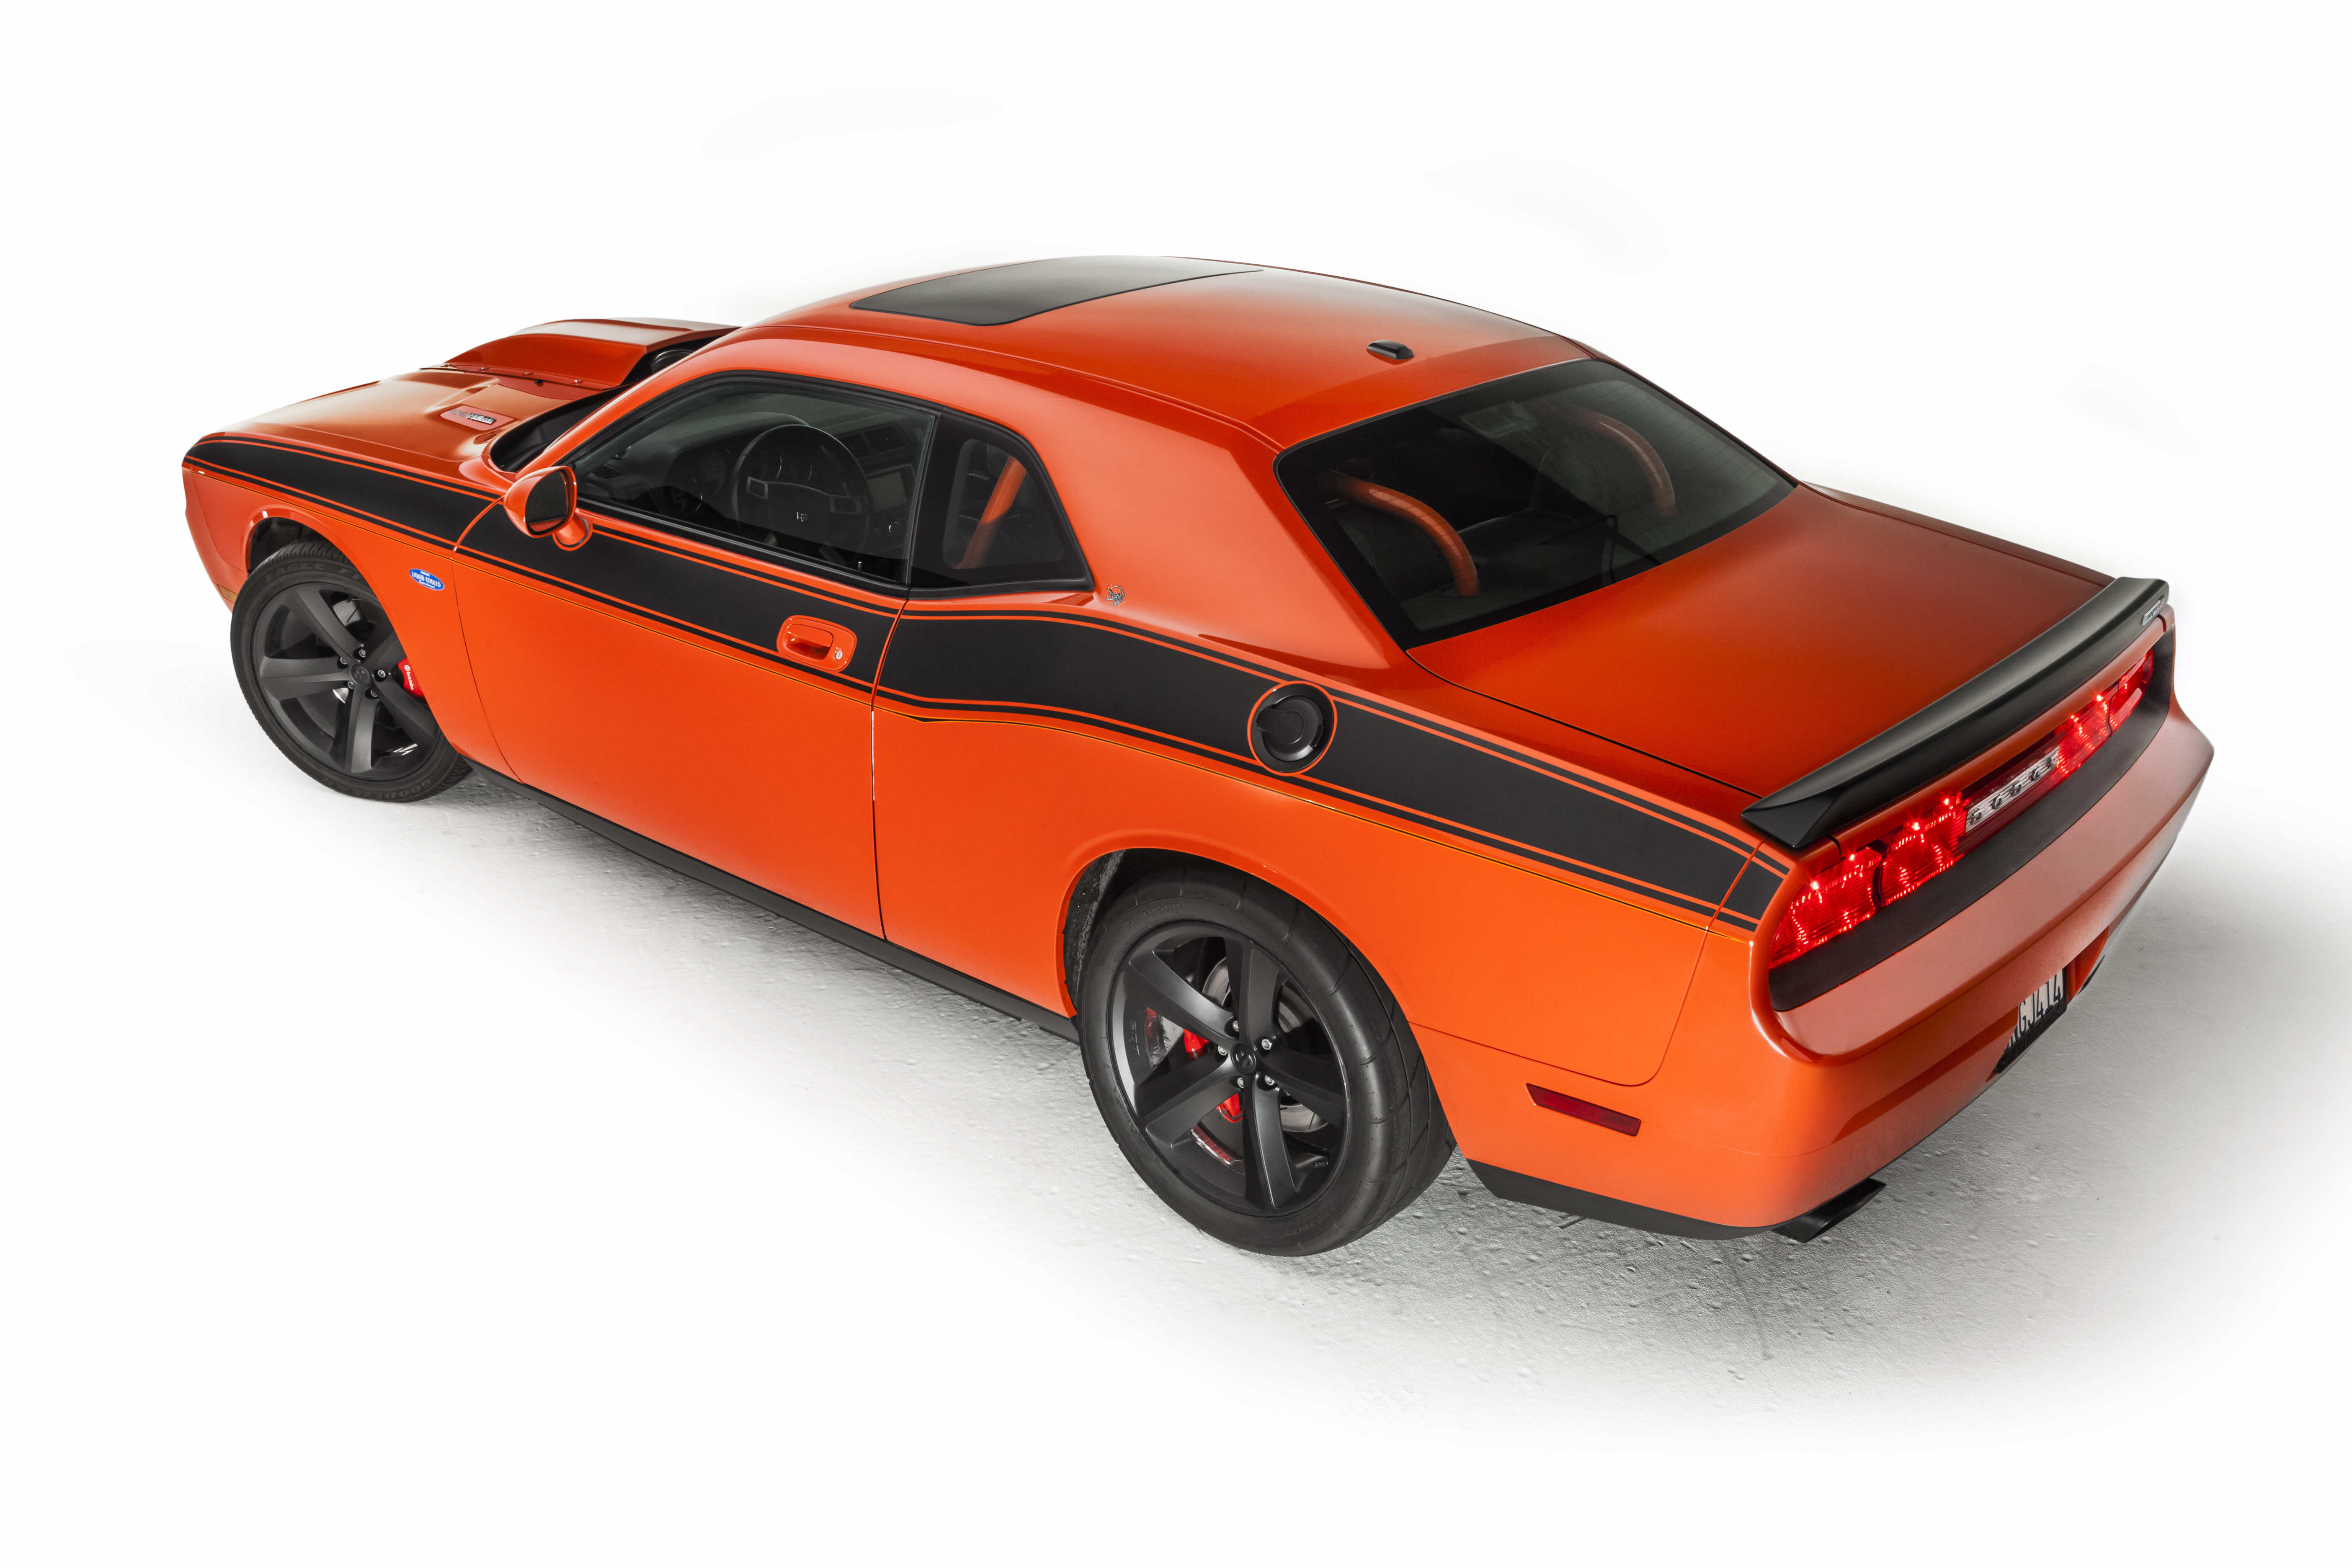 When Mr. Norm's decided to build a 1,000hp Challenger to commemorate the car's 50th Anniversary, they asked Kenne Bell to build a prototype. Kenne Bell informed them that such a car already existed, so Bill's Challenger was used as the Mr. Norm's prototype.